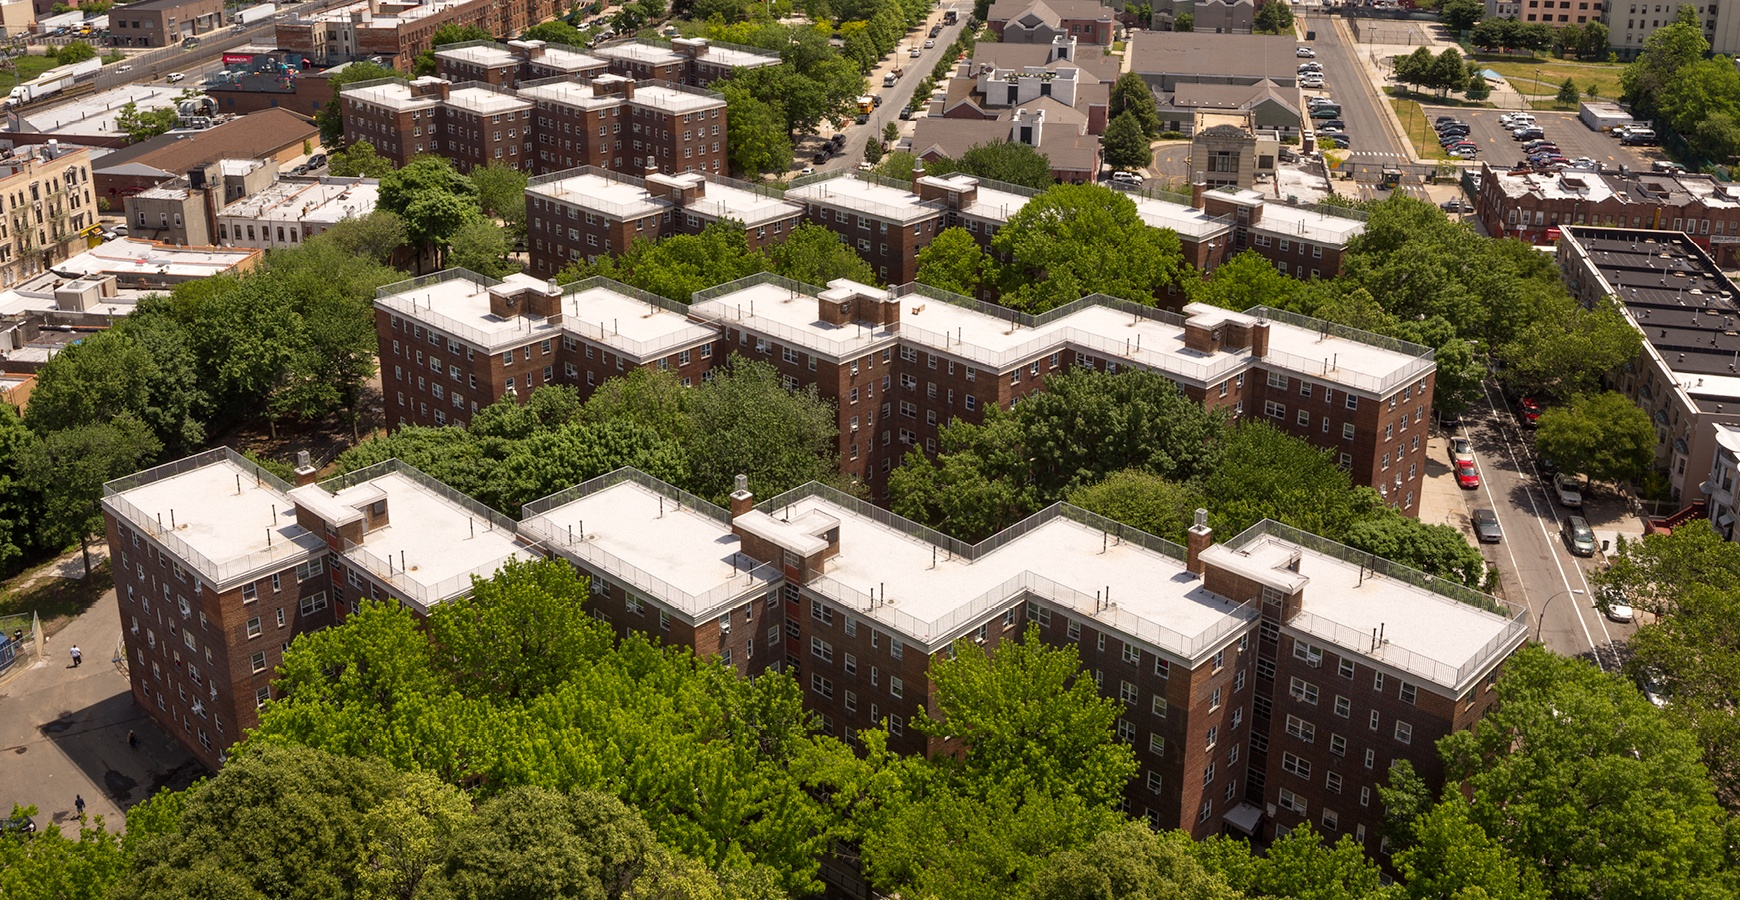 NYCHA Kingsborough Houses